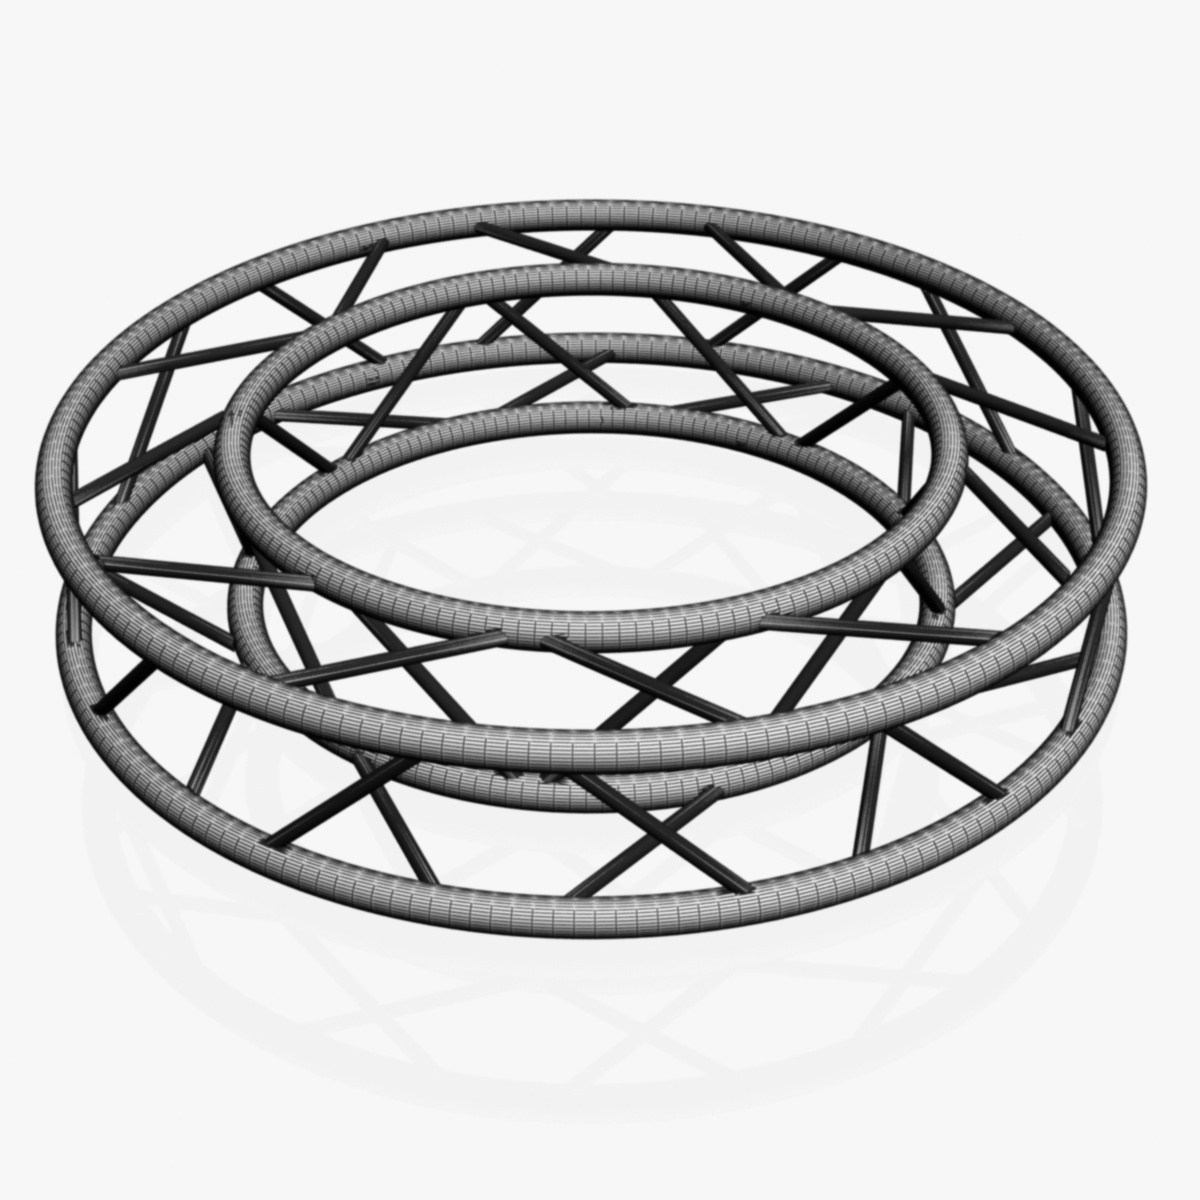 circle square truss full diameter 150cm 3d model 3ds max fbx c4d dae  obj 252300